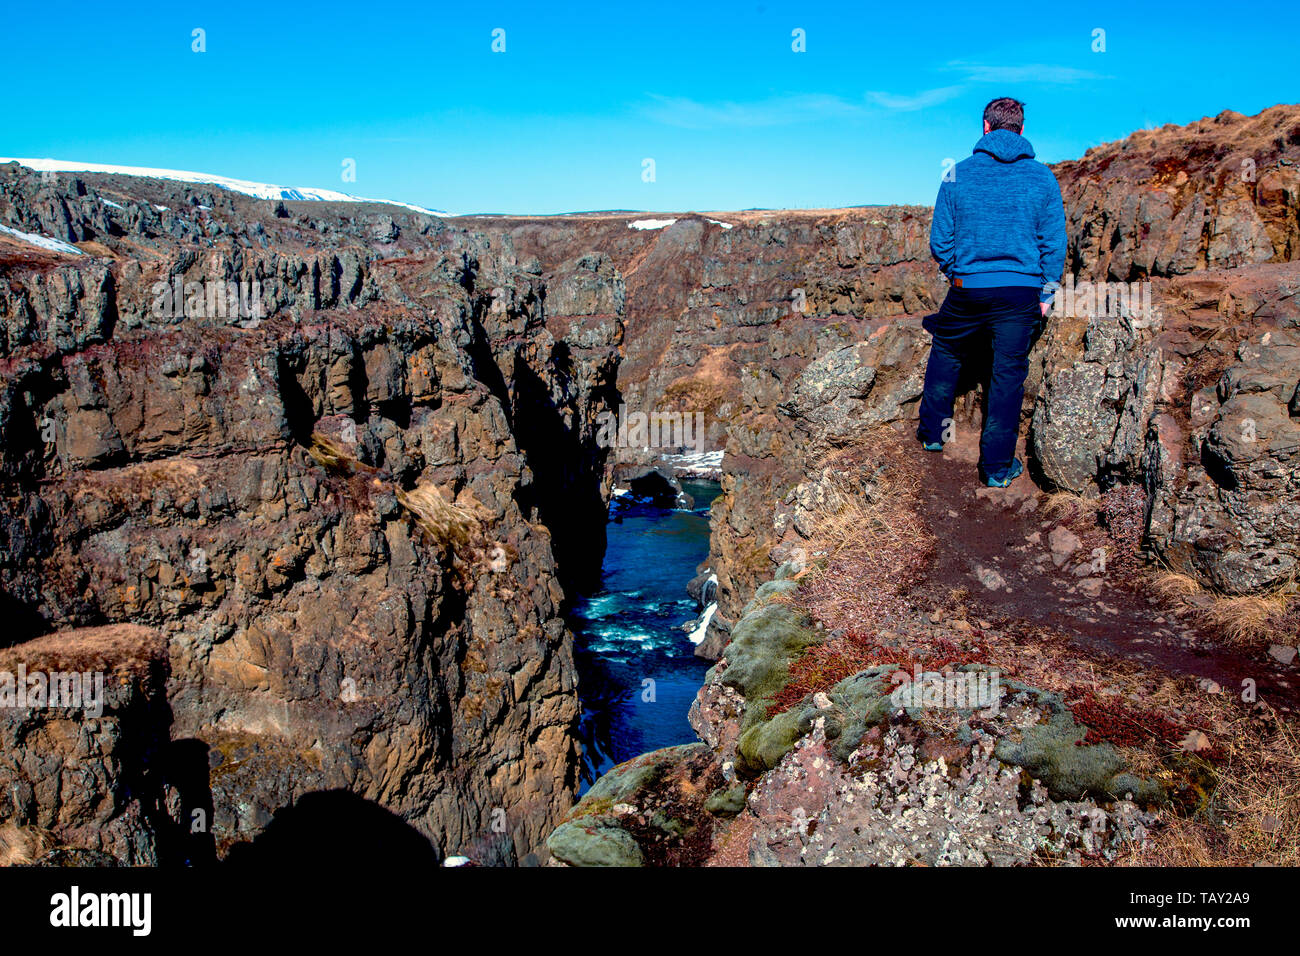 Man looks at a gorge causing a river to flow in the winter of iceland - Stock Image